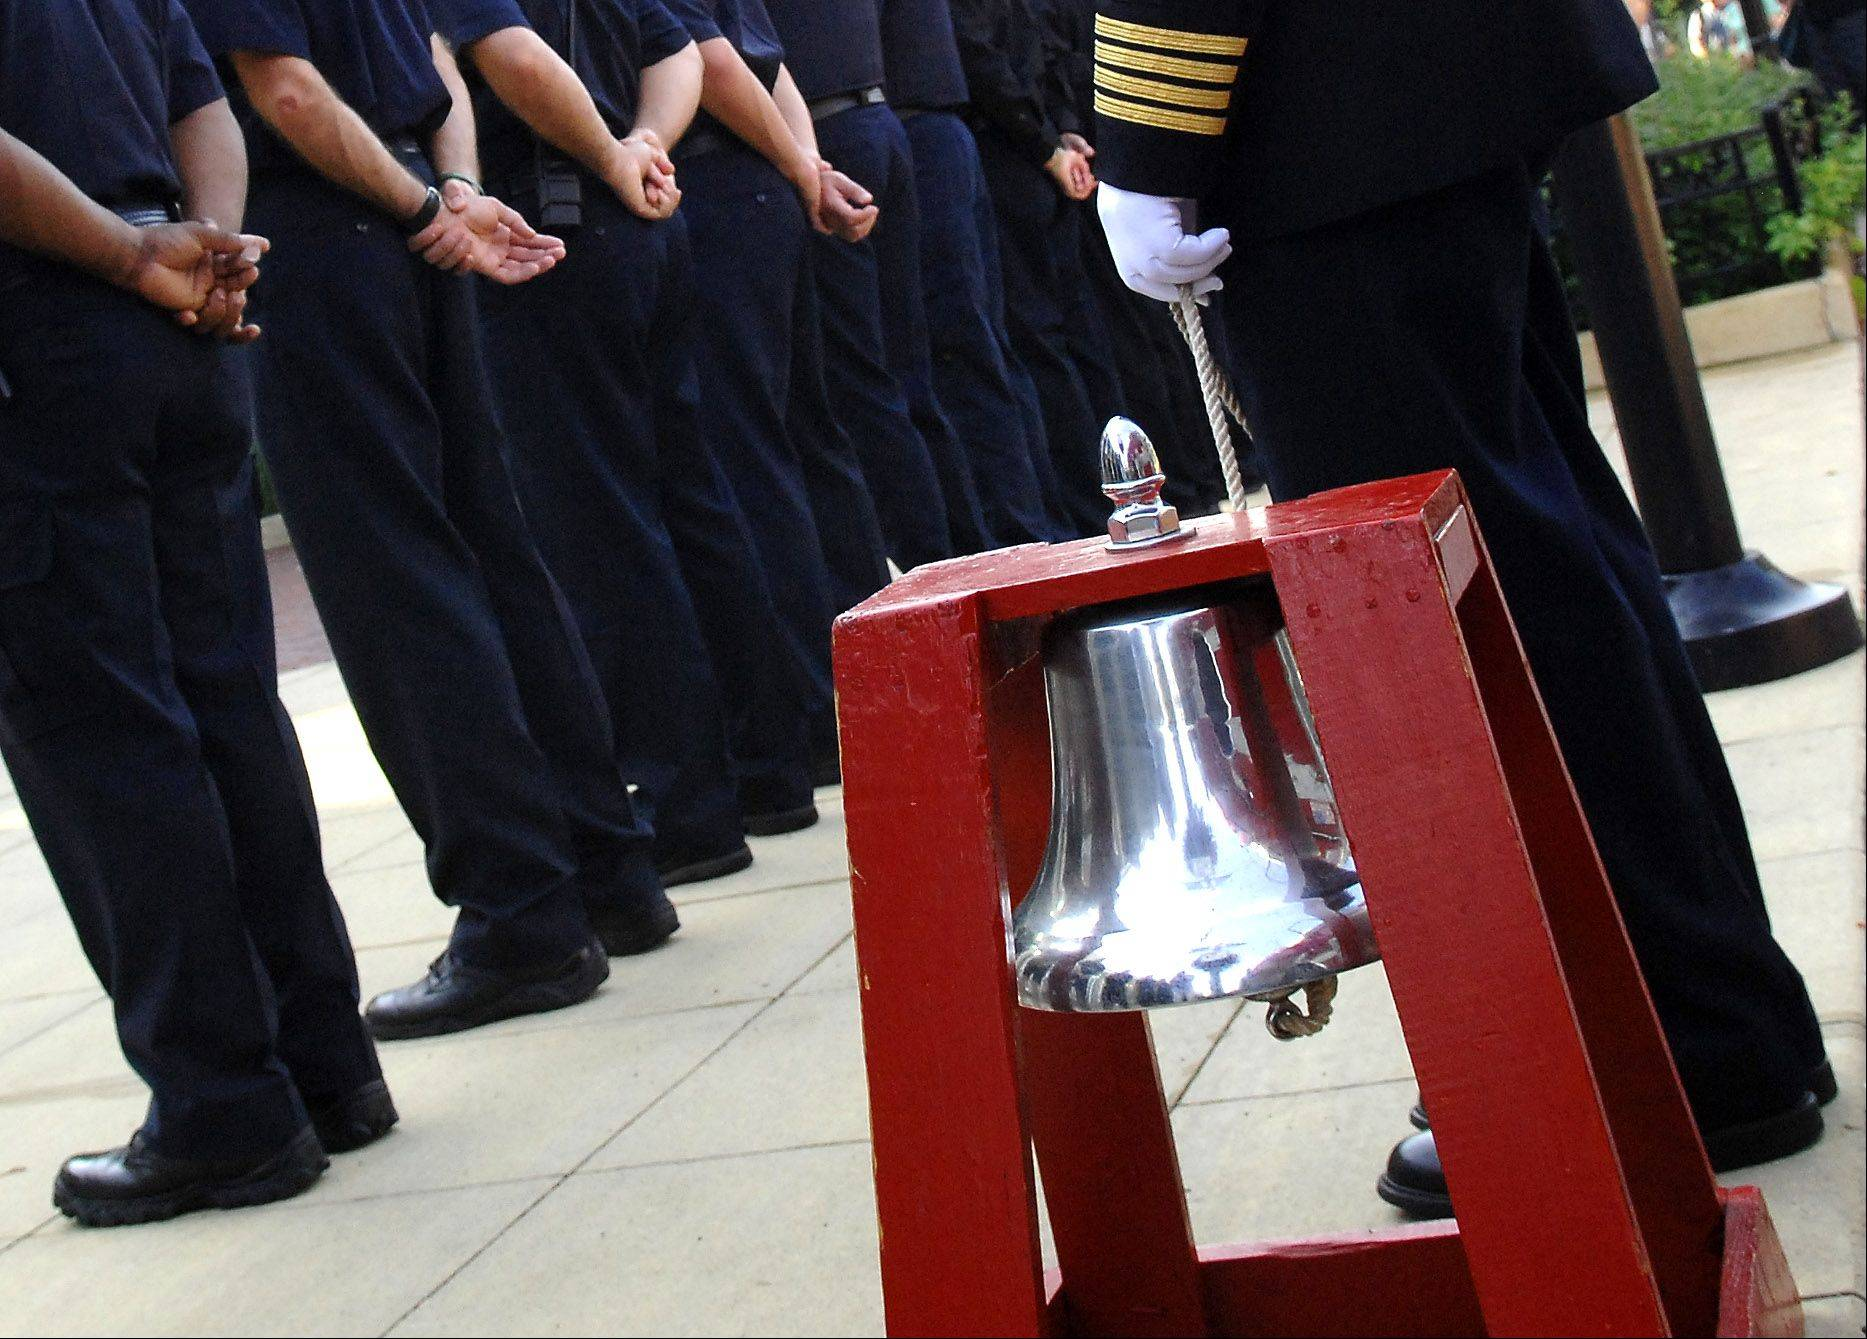 A fire house bell is rung in honor of the firefighters who lost their lives in the aftermath of the terrorist attacks of 2001 during the city of Elgin�s Sept. 11th ceremony Wednesday in front of the police department.